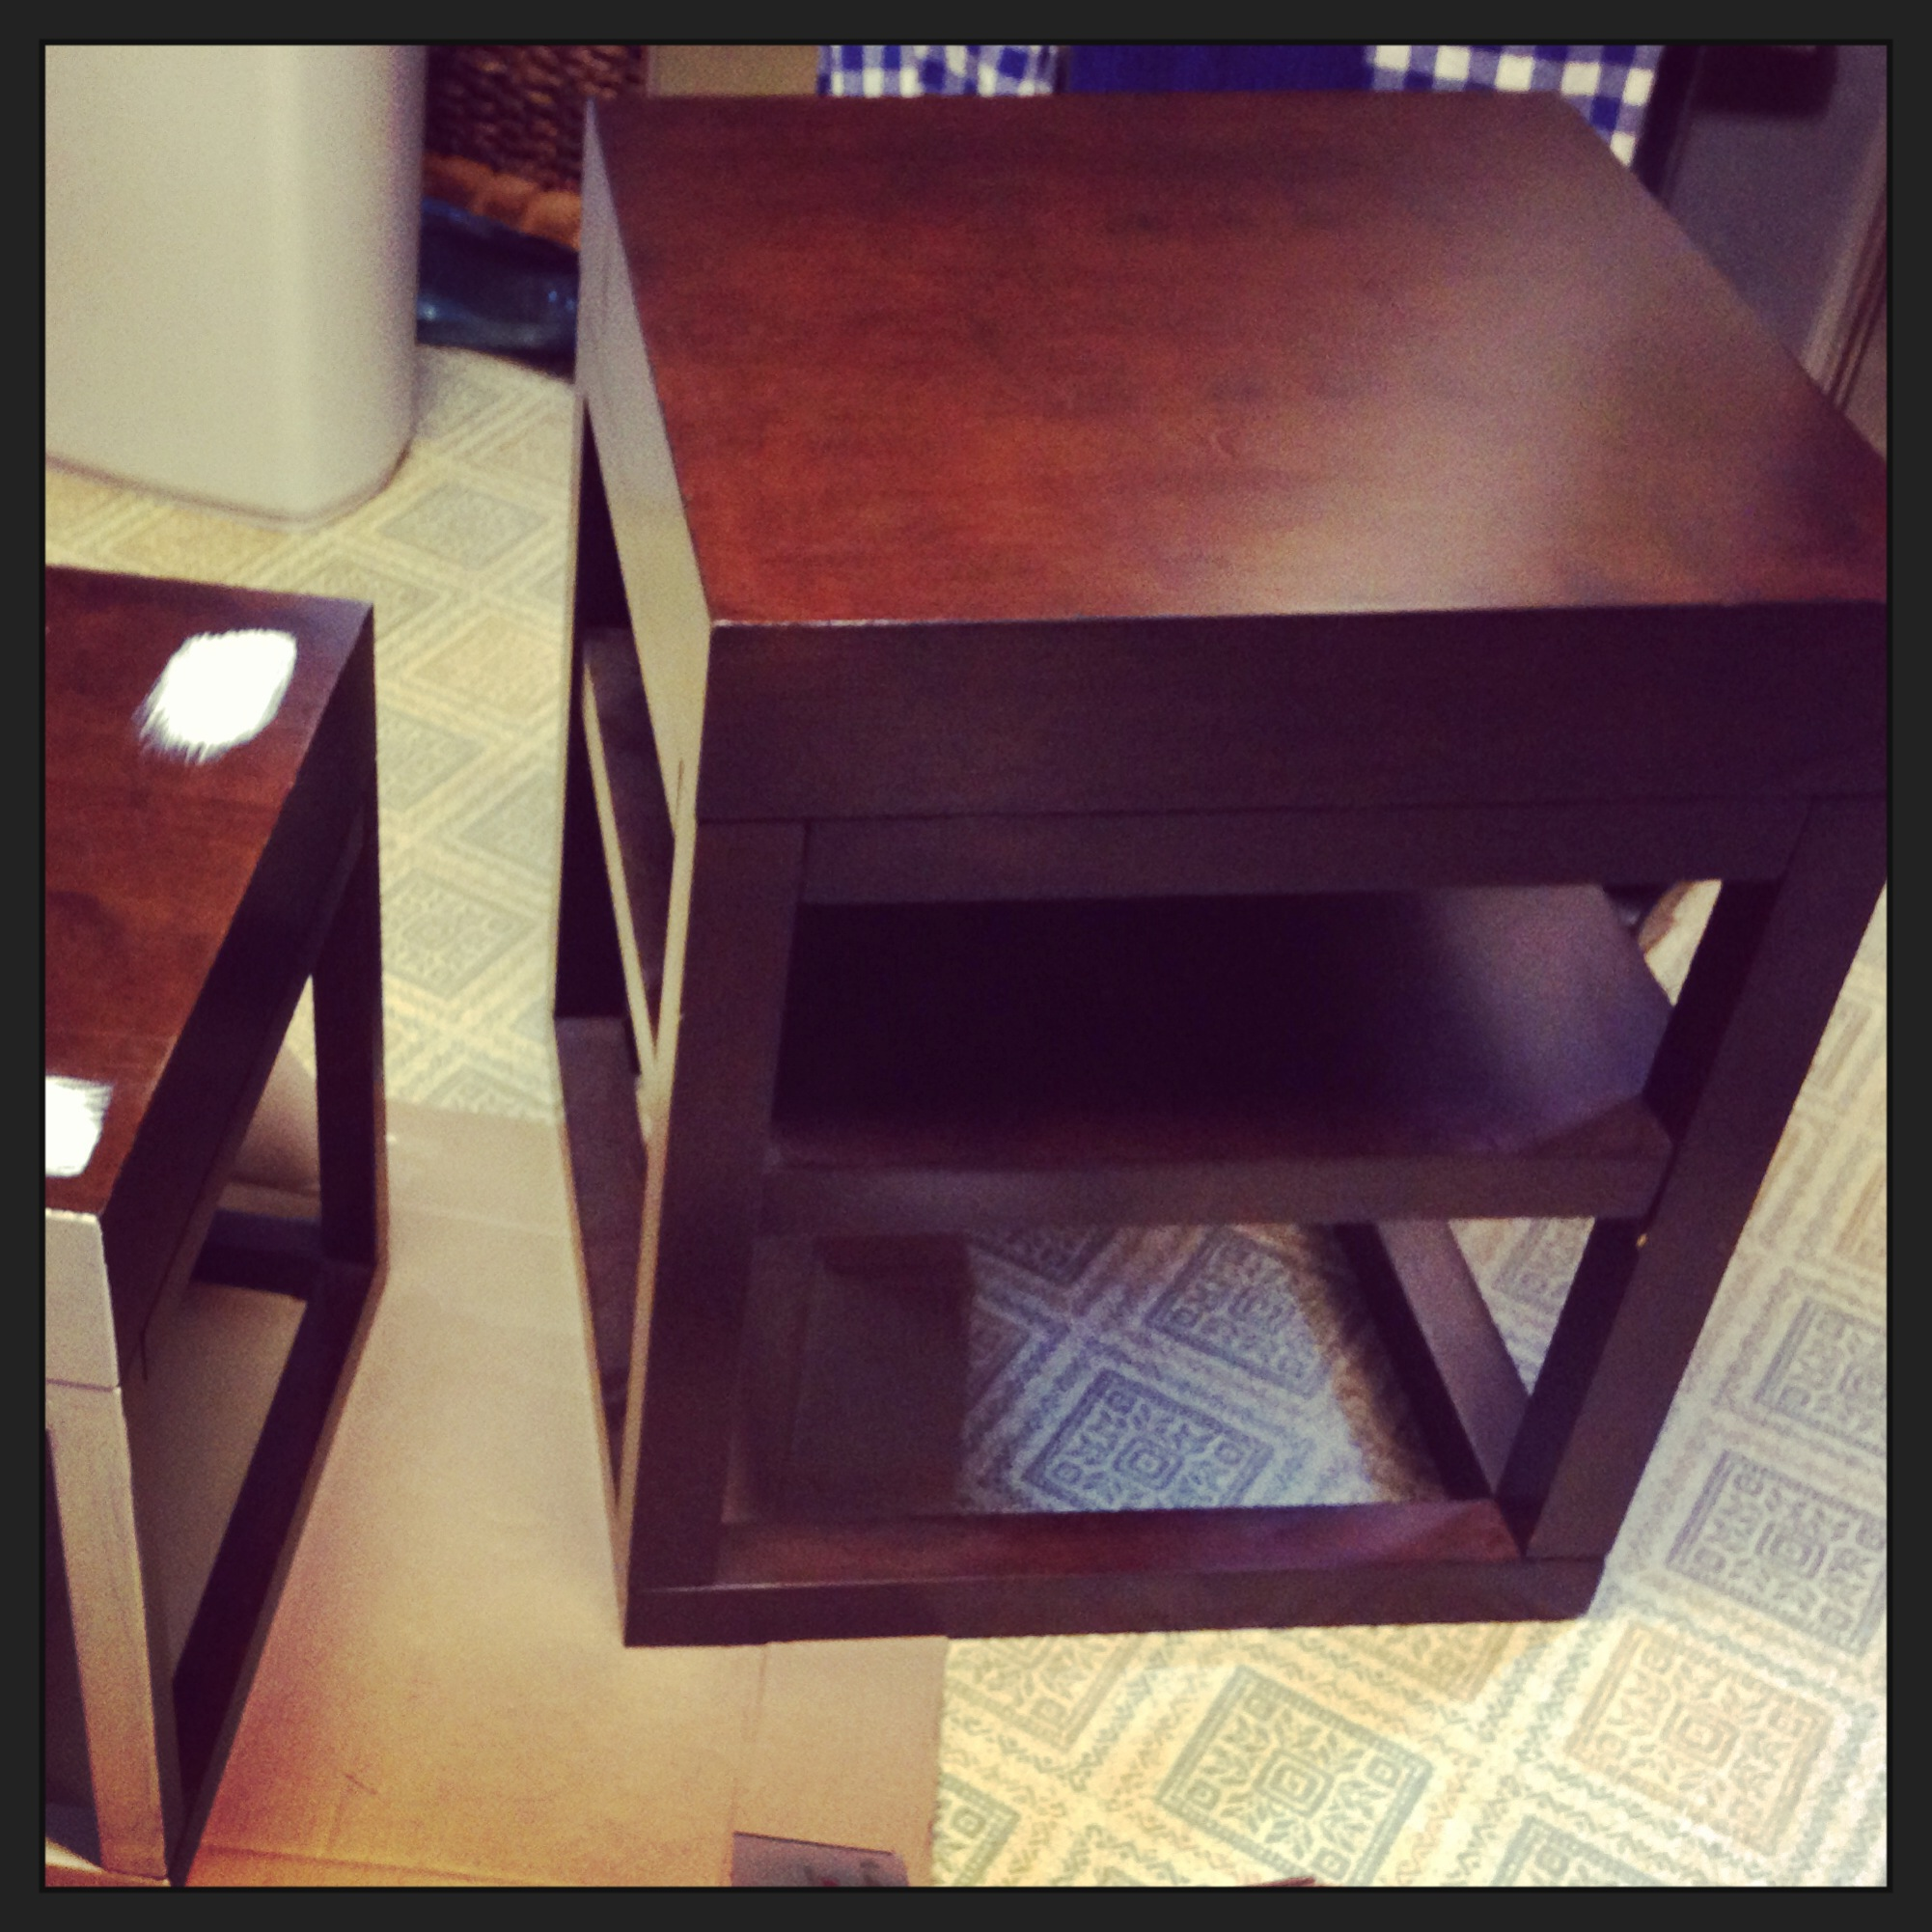 Tuesday Morning Mirrored Furniture